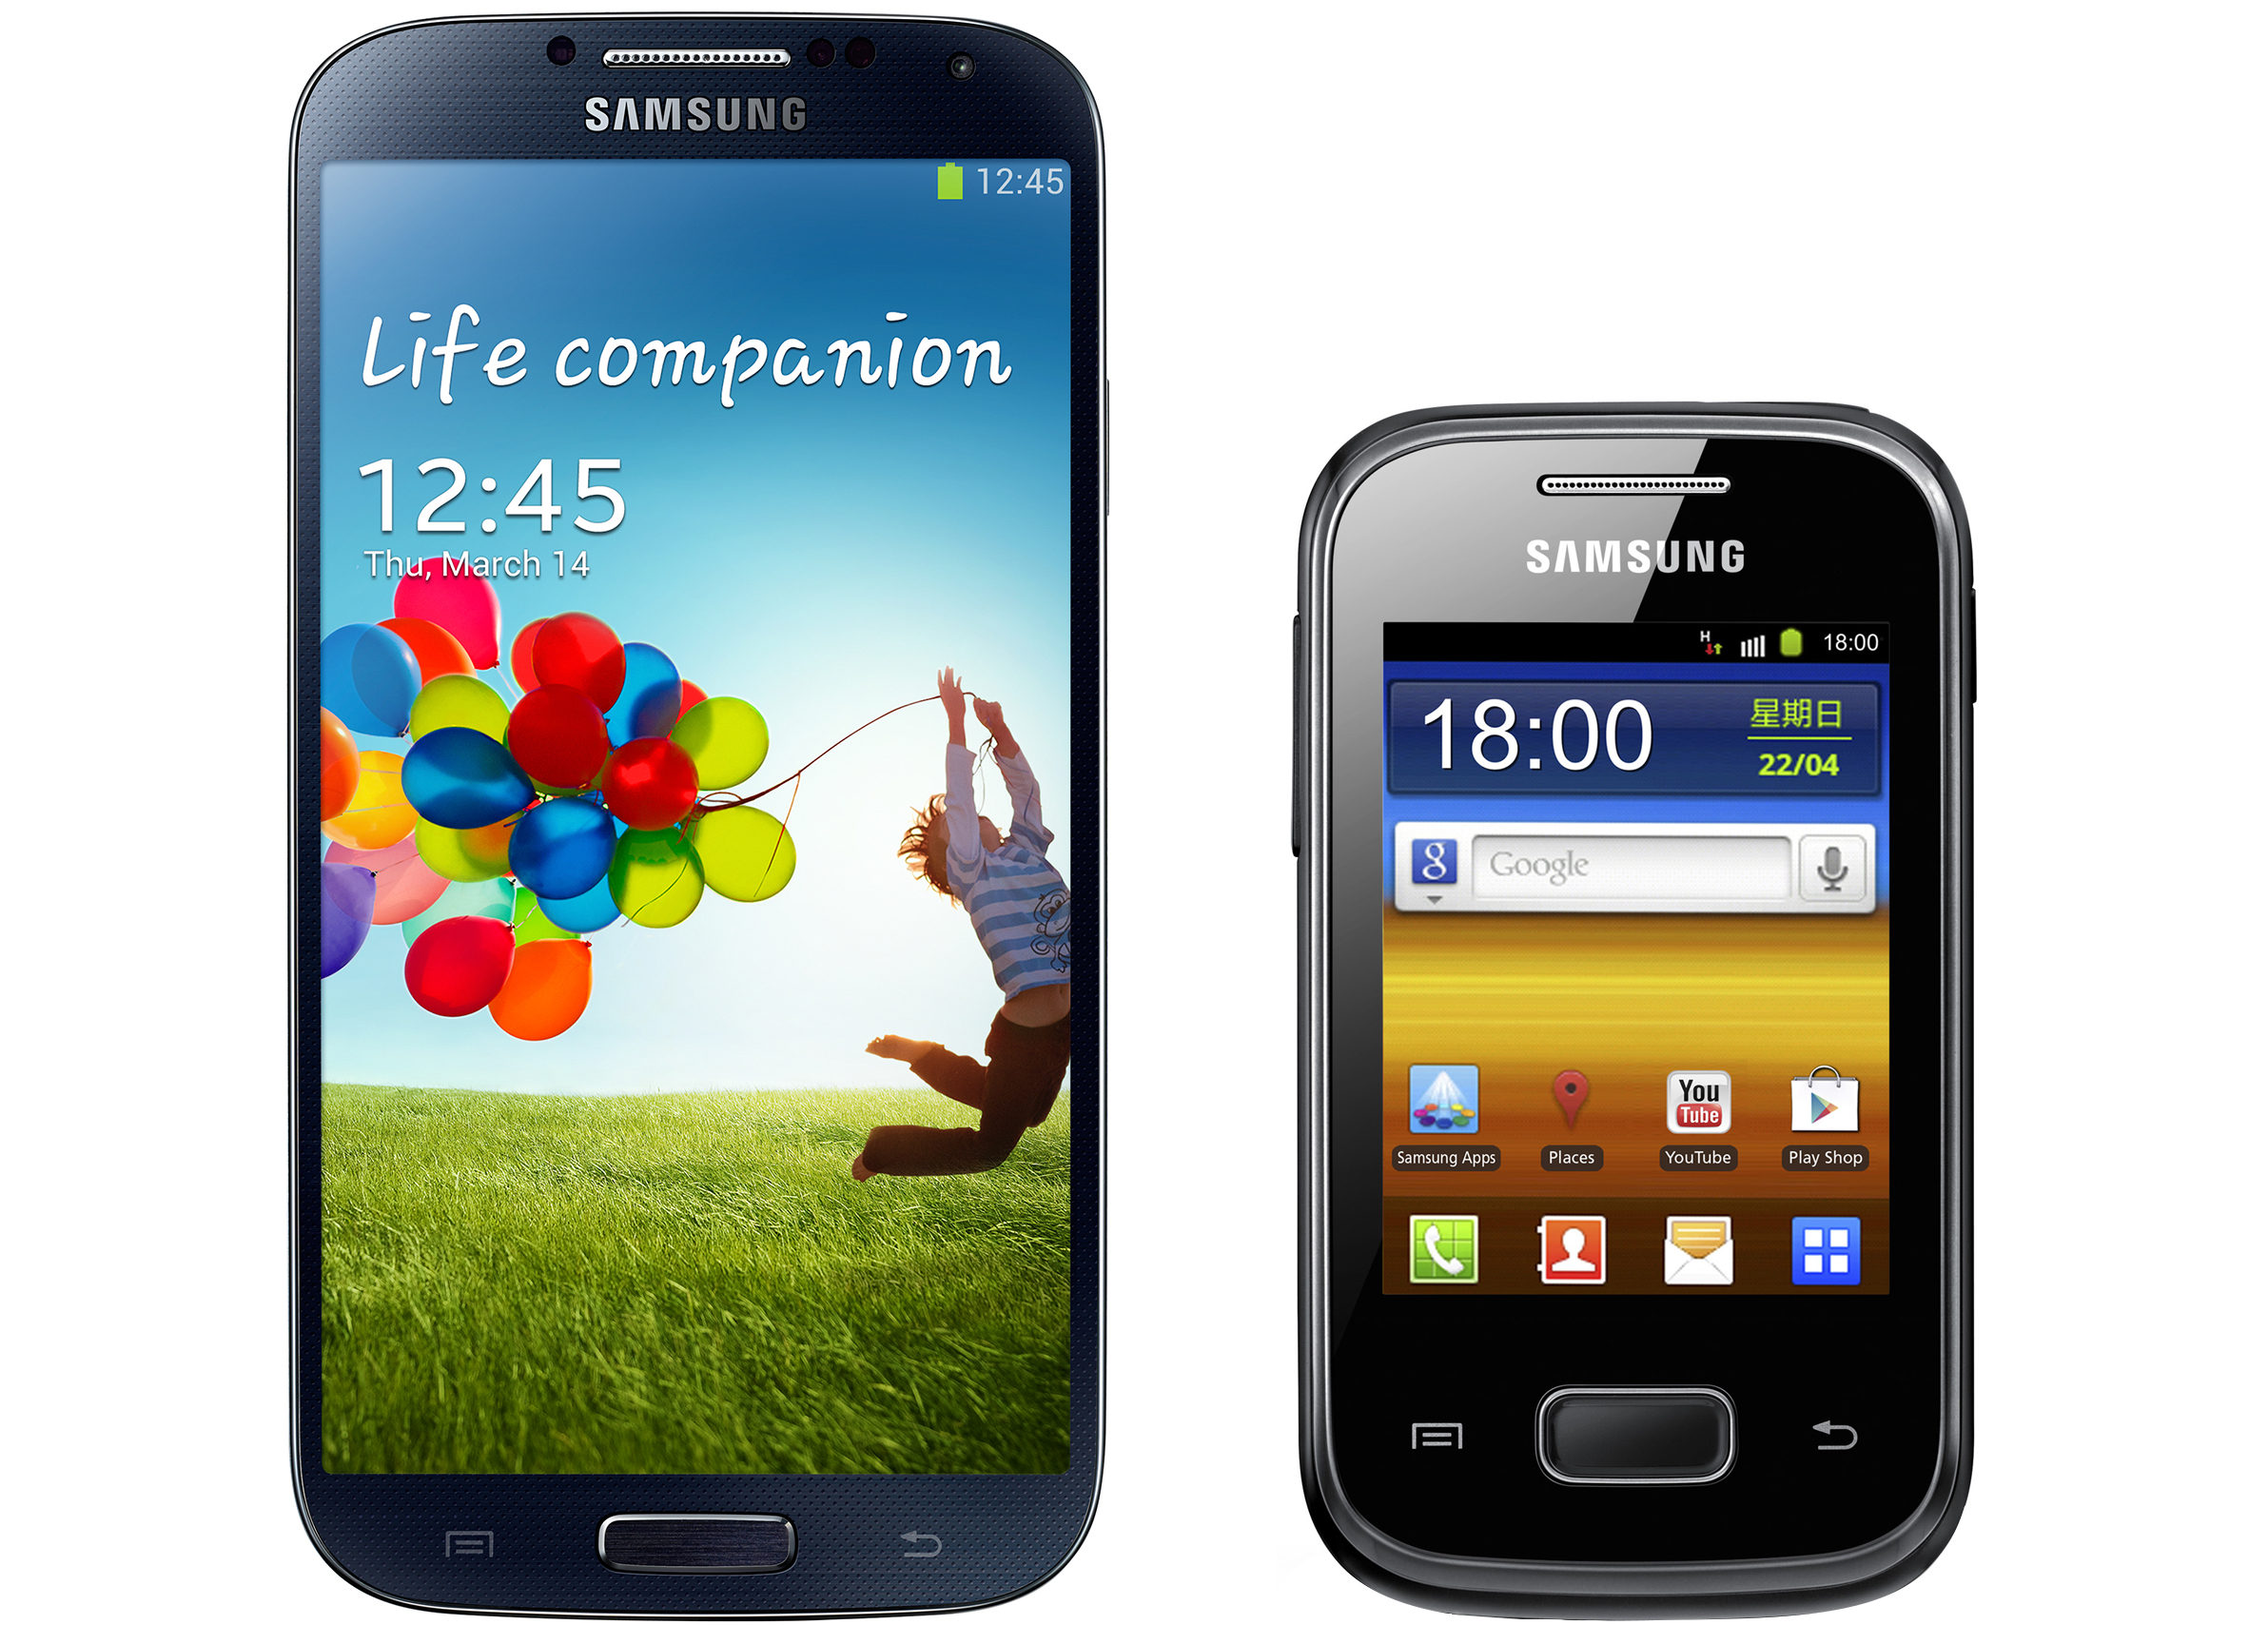 To-scale images of the Samsung Galaxy S4 (left) and a popular device in the developing world, the Samsung Galaxy Pocket (right).